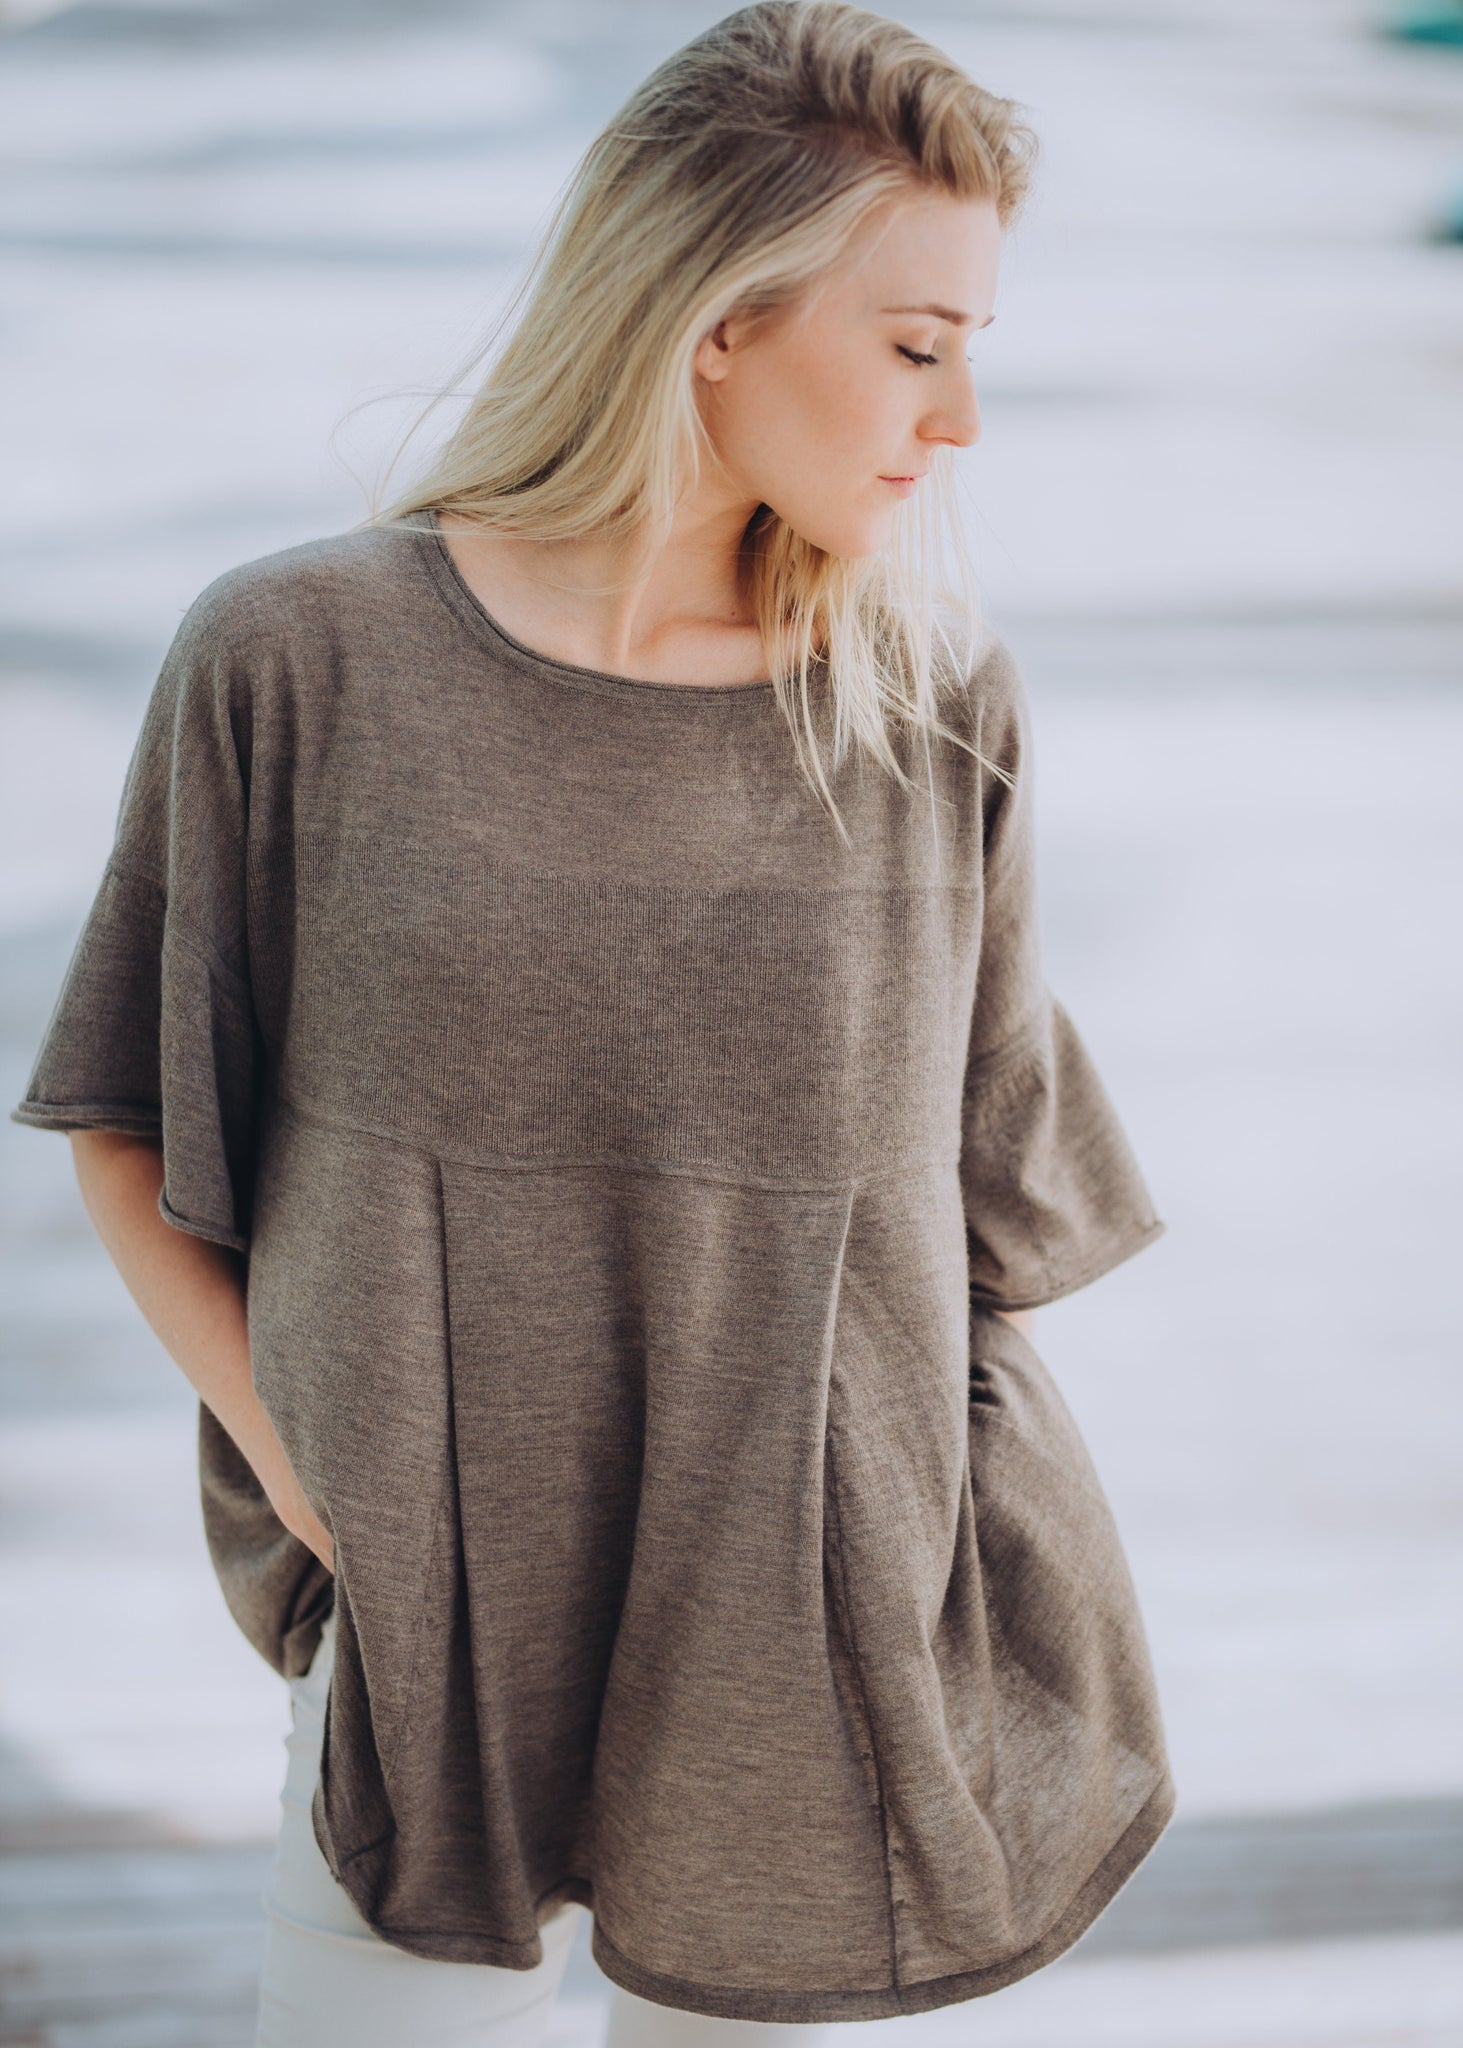 ALINA | Our fine knit A-line tunic